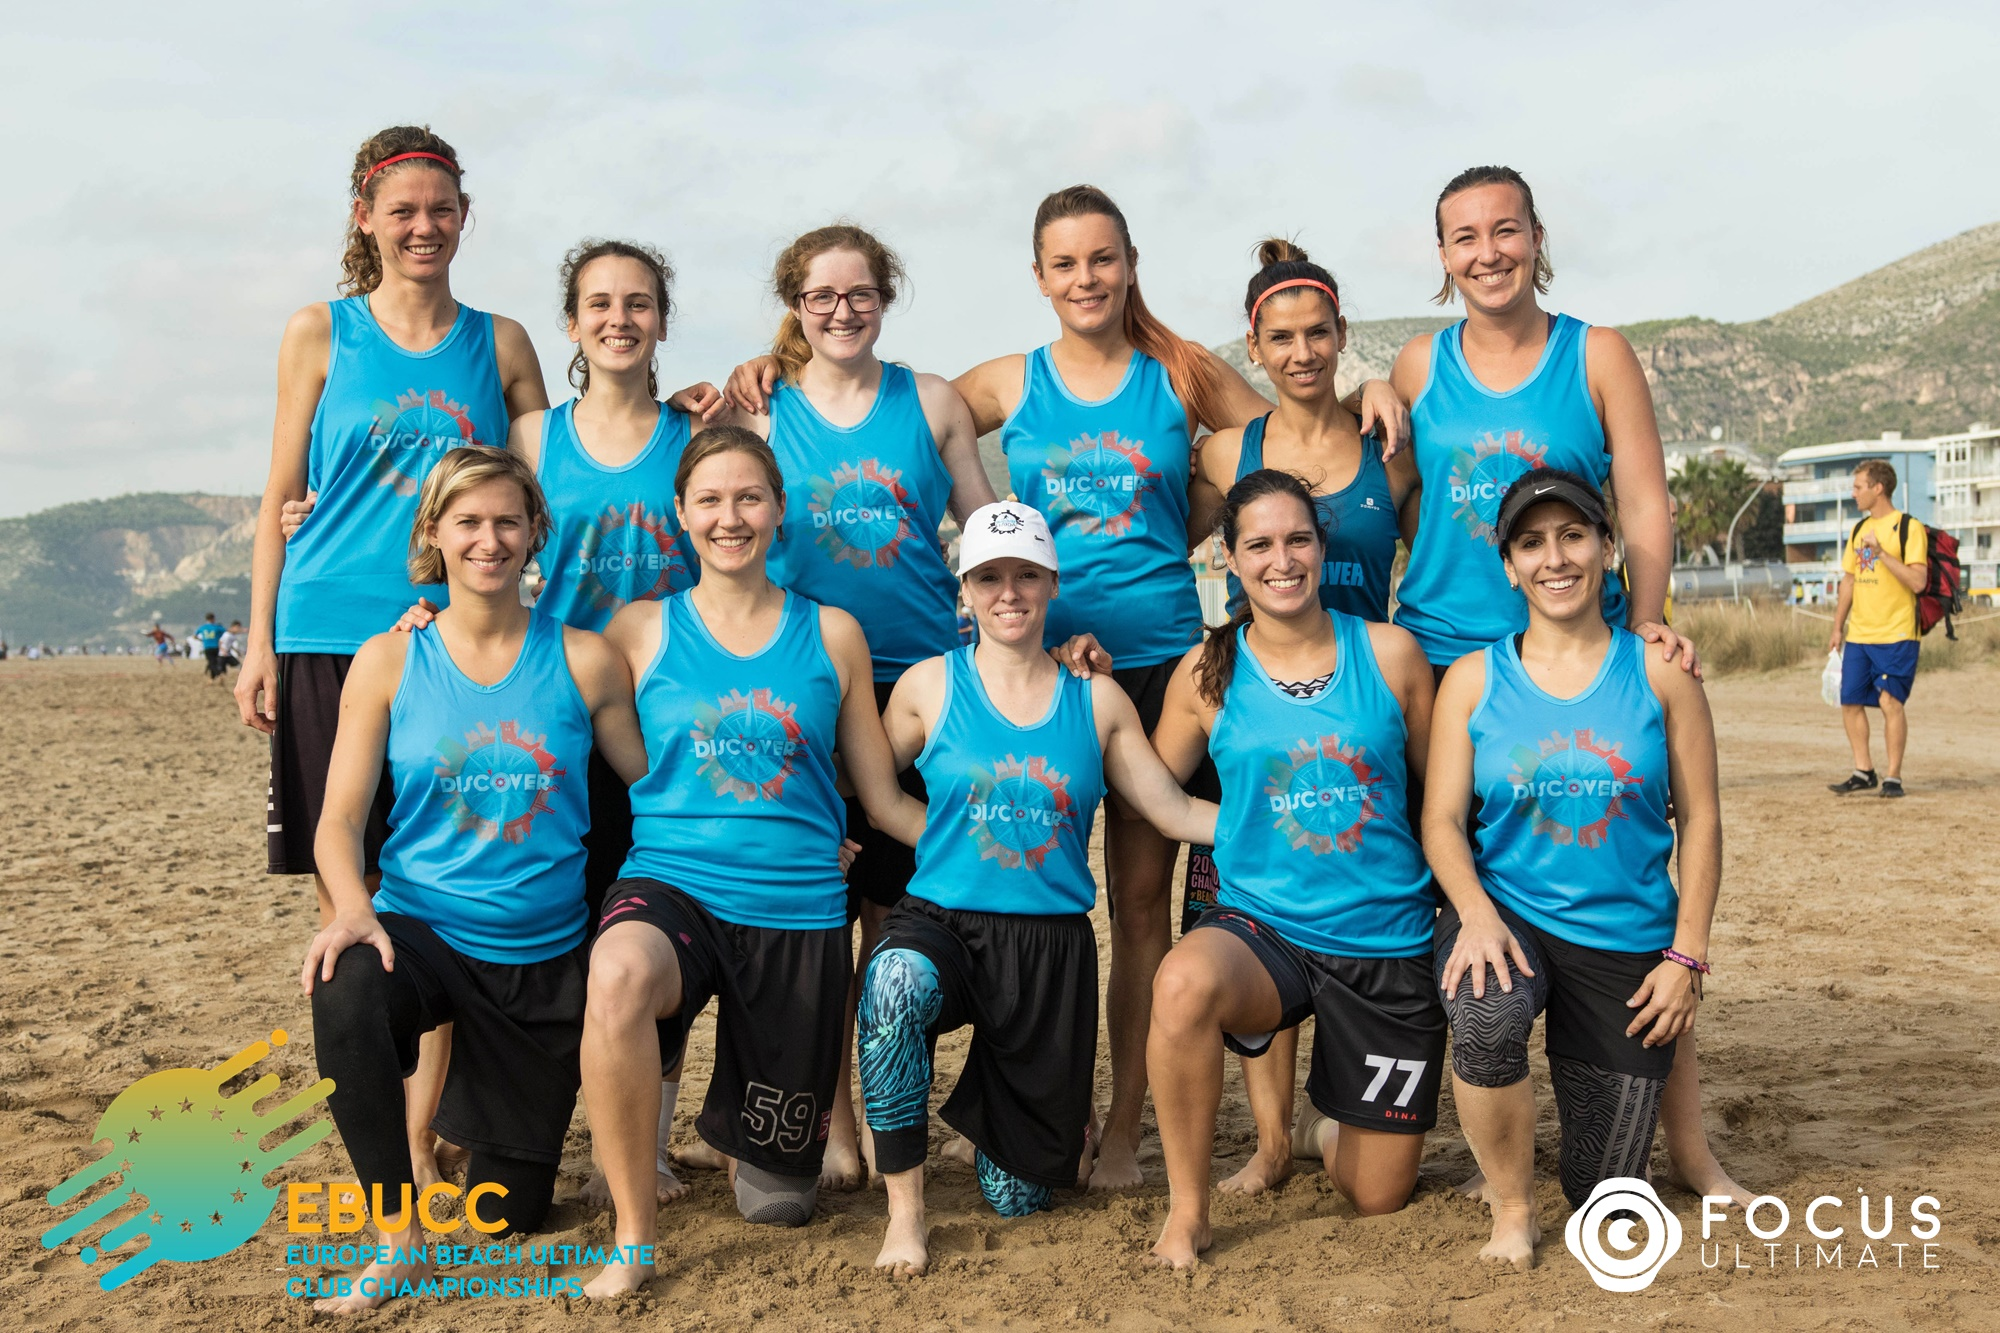 Team picture of Disc'Over Lisboa Women